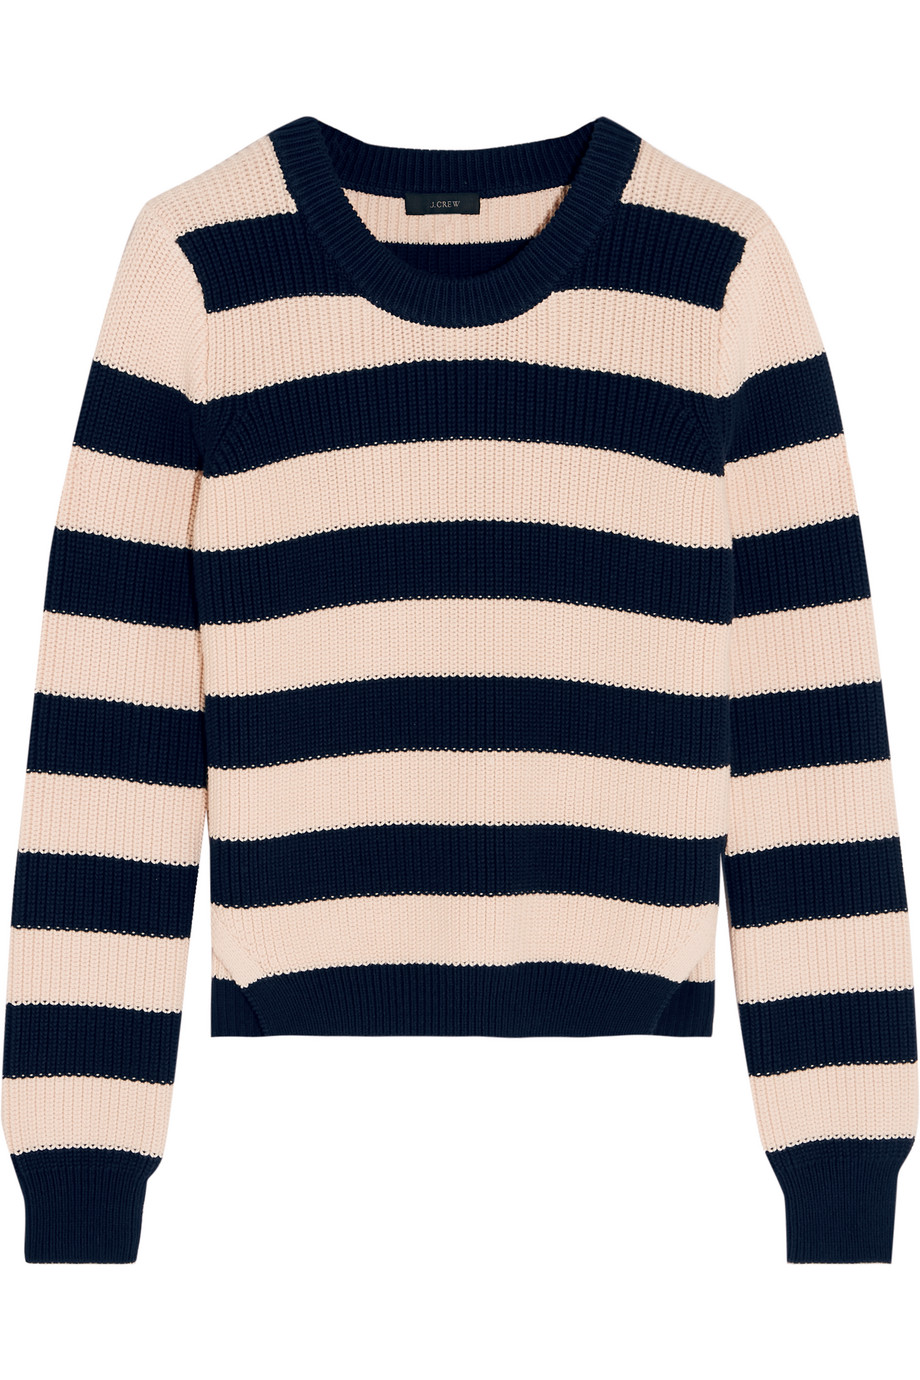 J.Crew Collection Striped Cotton Sweater, Midnight Blue/Peach, Women's